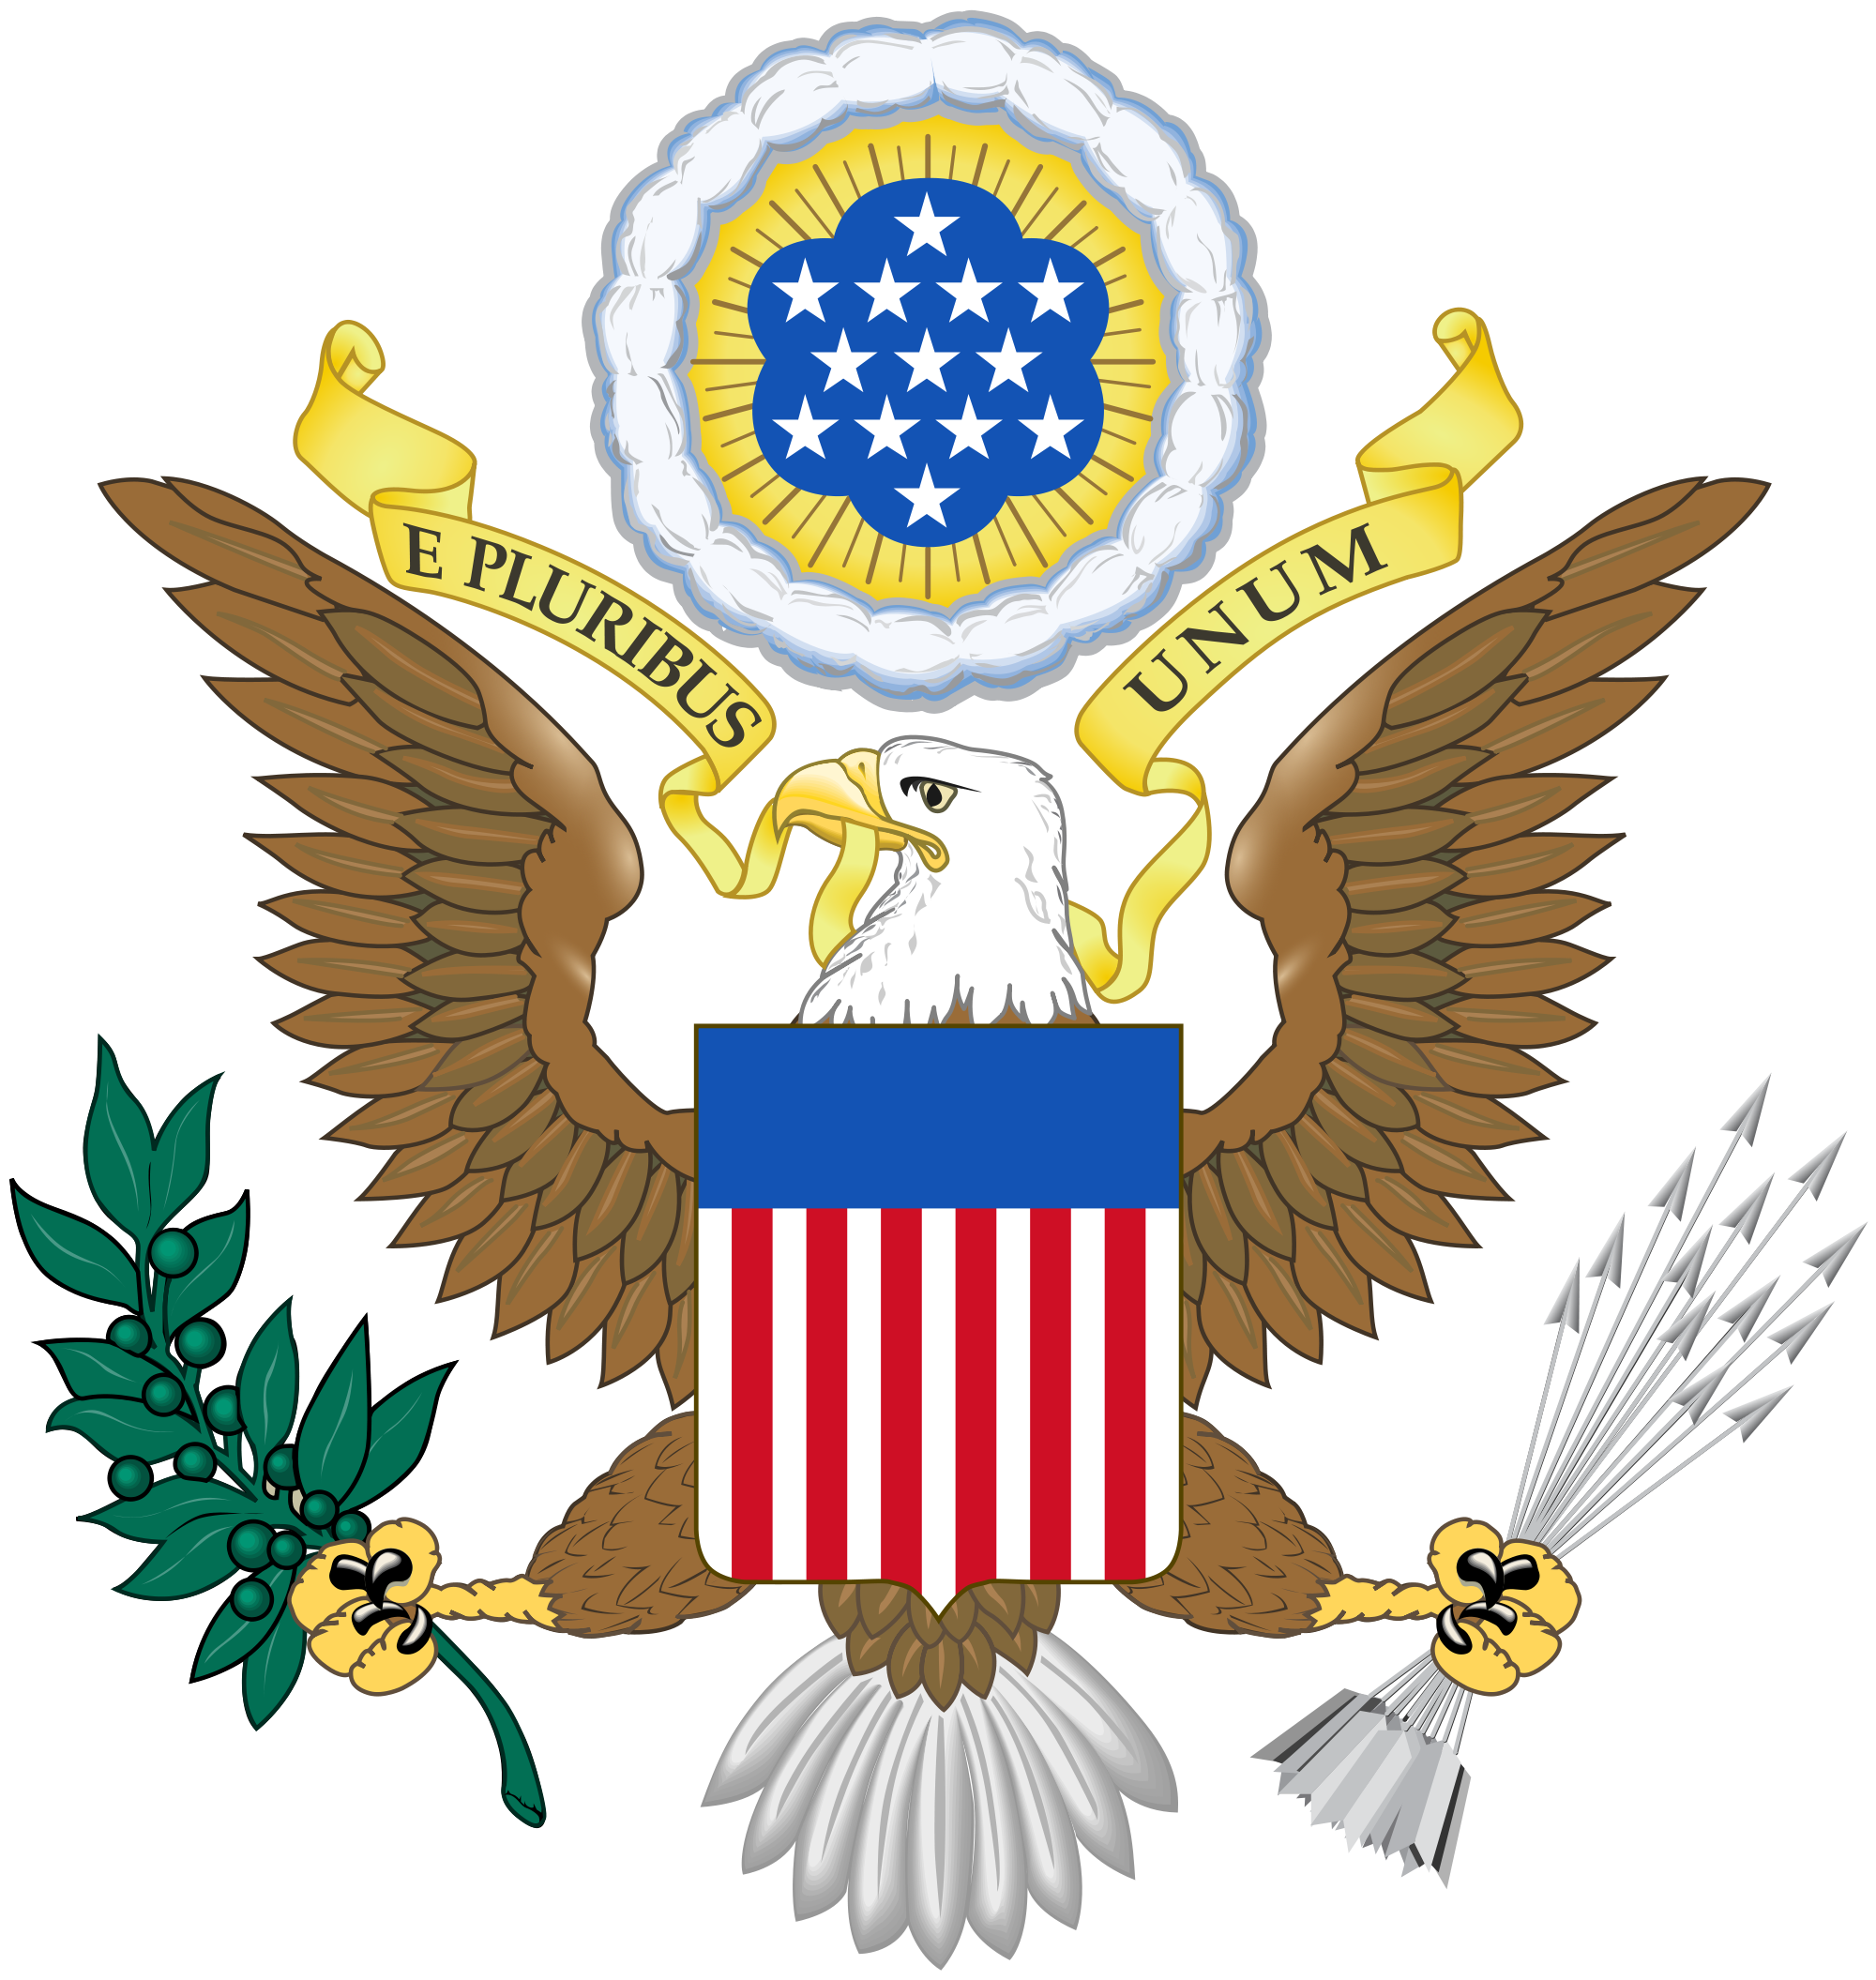 The Great Seal of the United States ca. 1917 - 1919